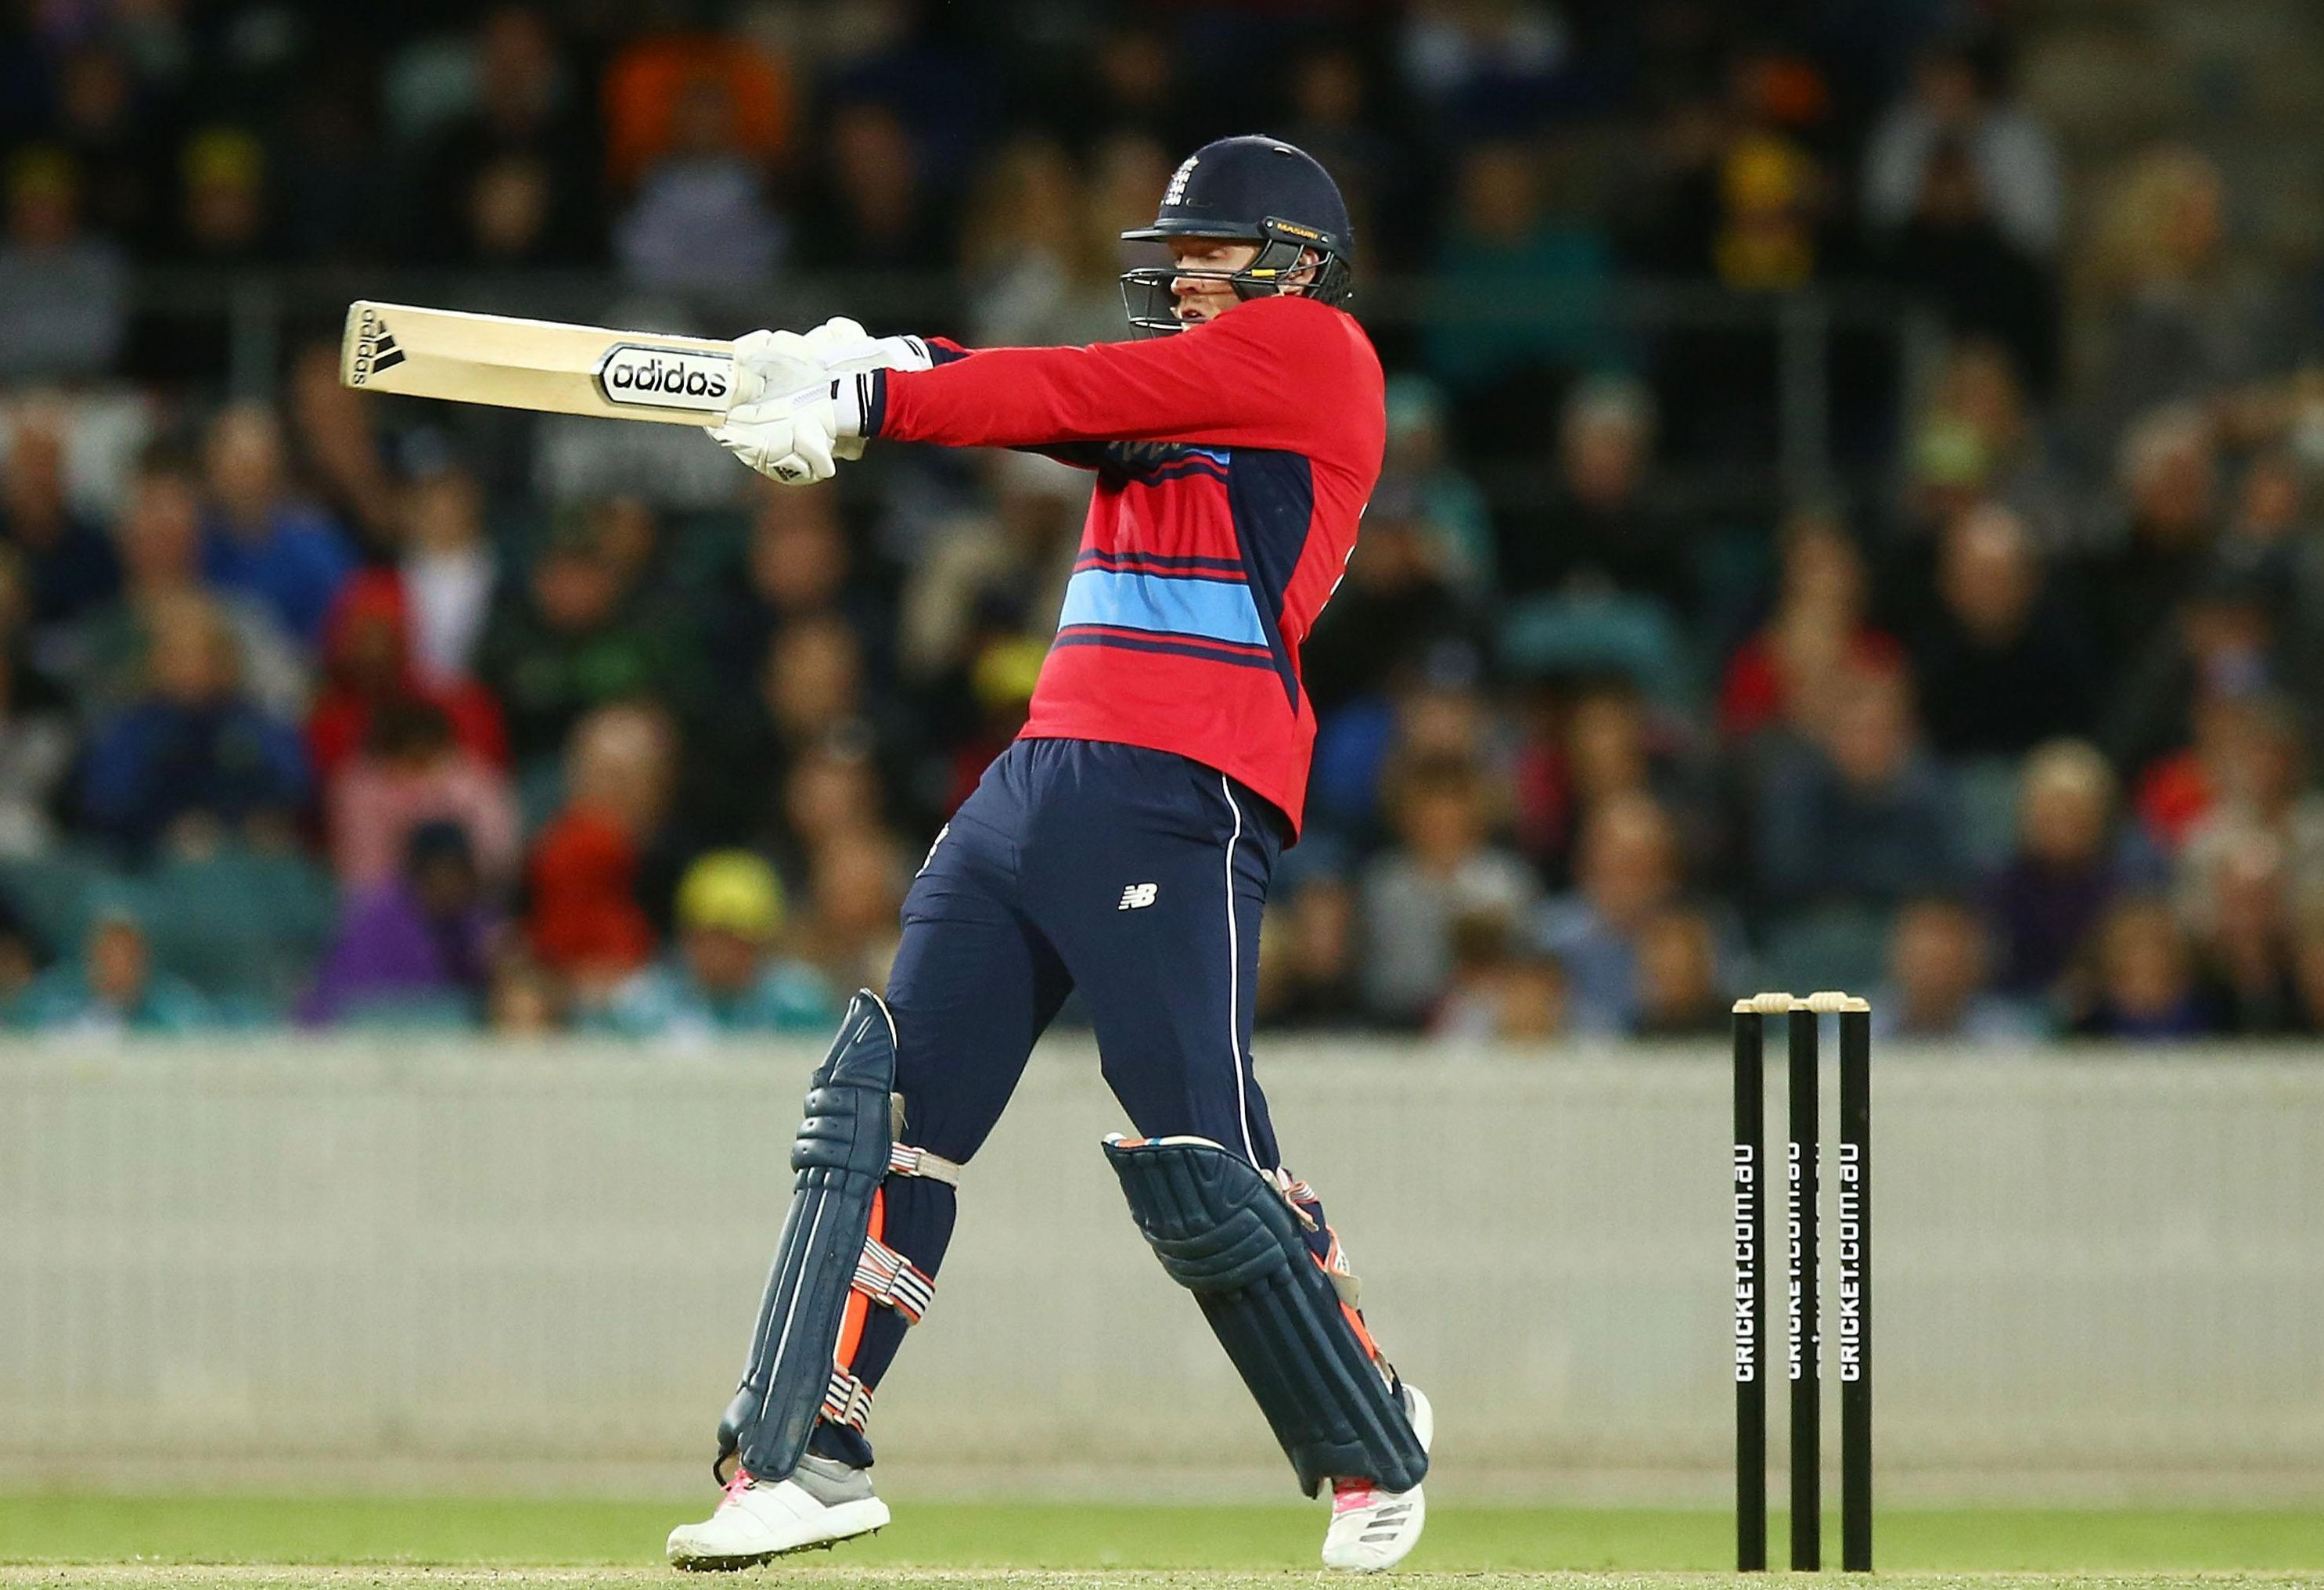 Willey dominated the play as England faces a Prime Ministers XI in a T20 warm-up